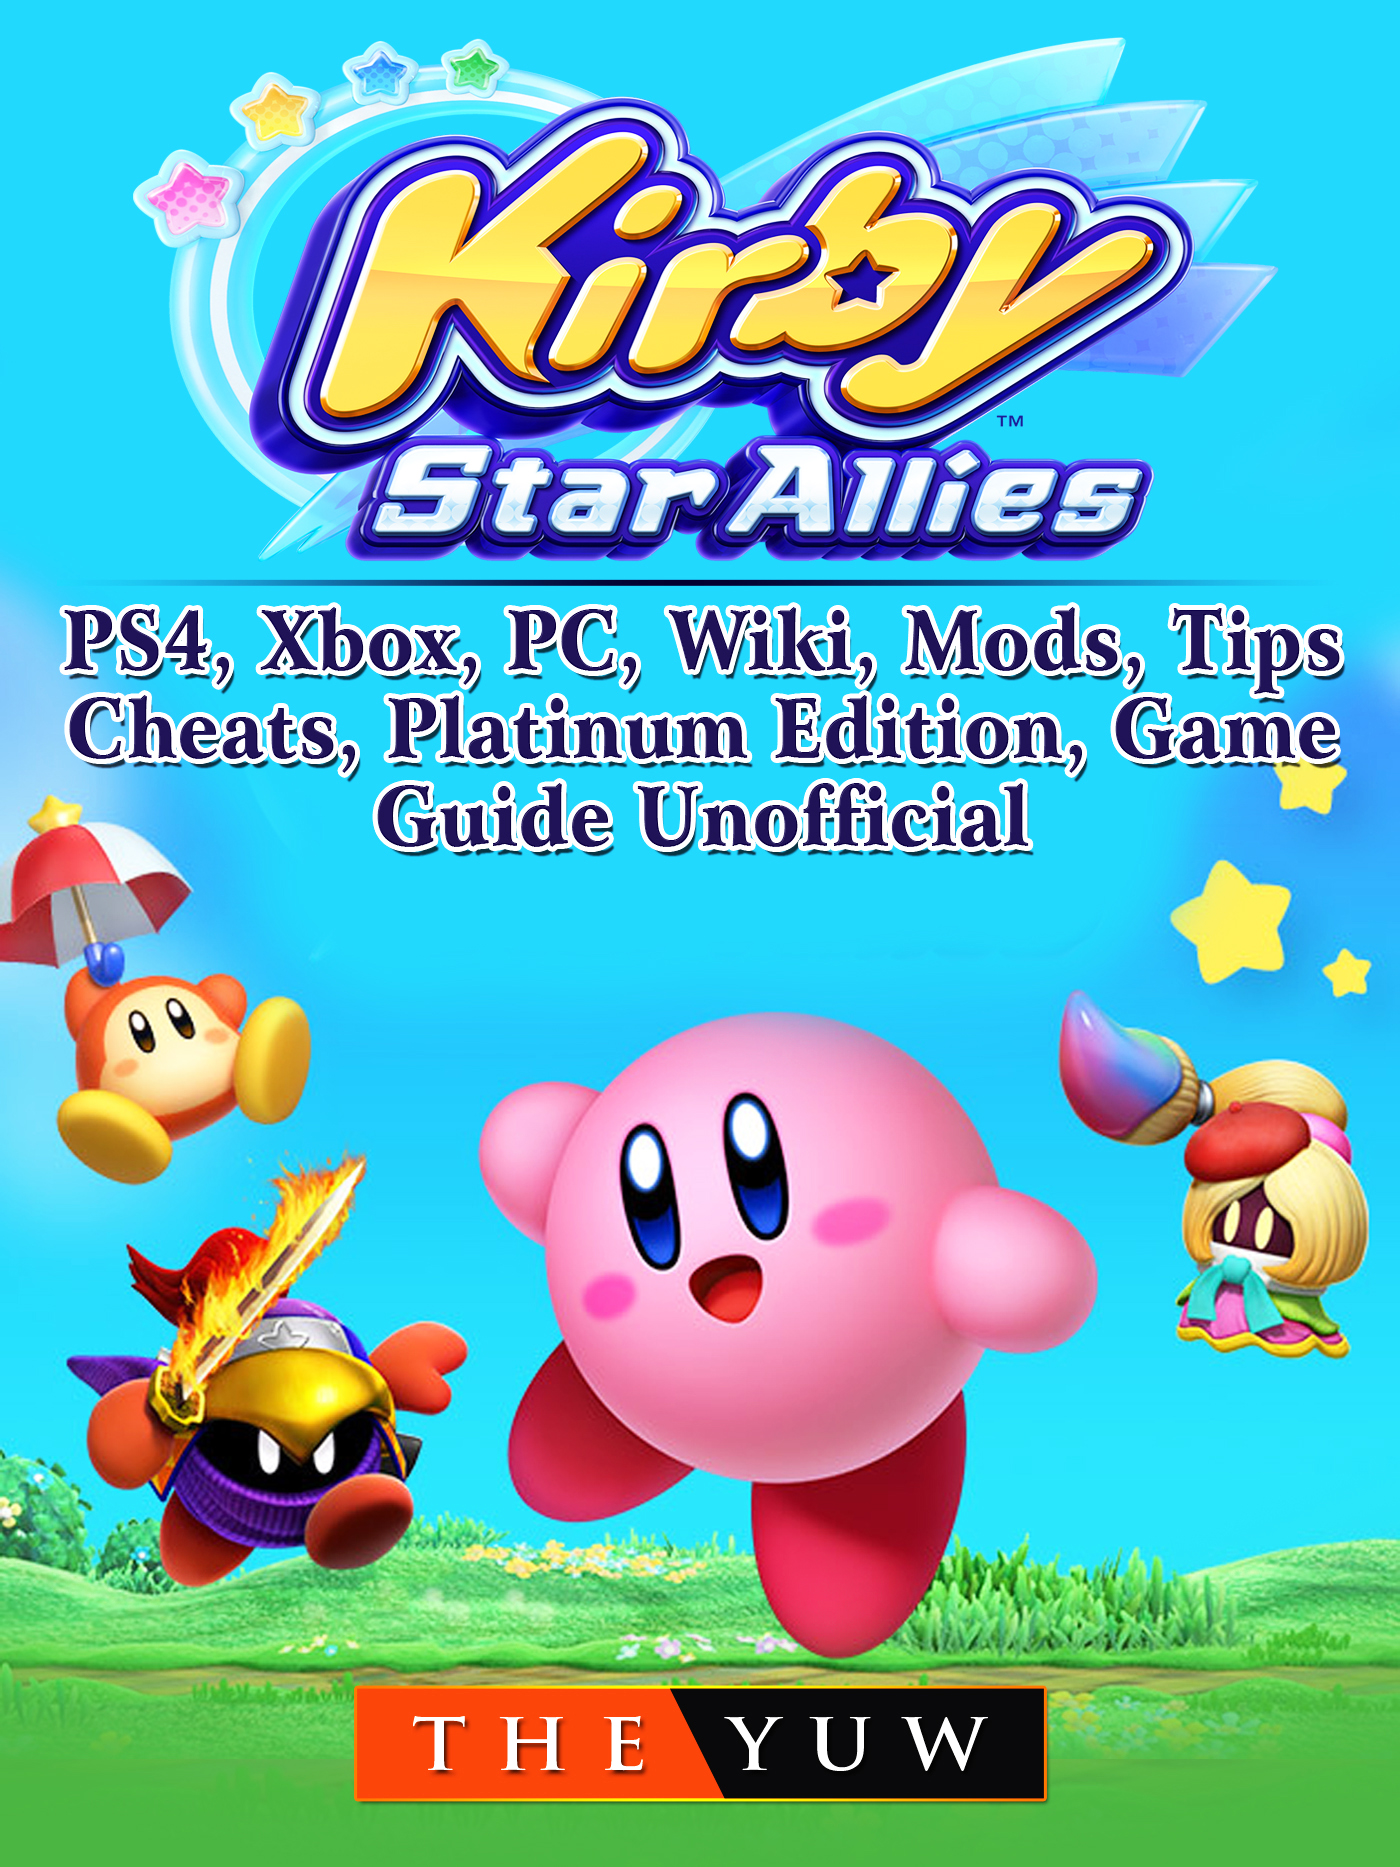 Kirby Star Allies, Nintendo Switch, Gameplay, Multiplayer, Tips, Cheats, Game Guide Unofficial By The Yuw